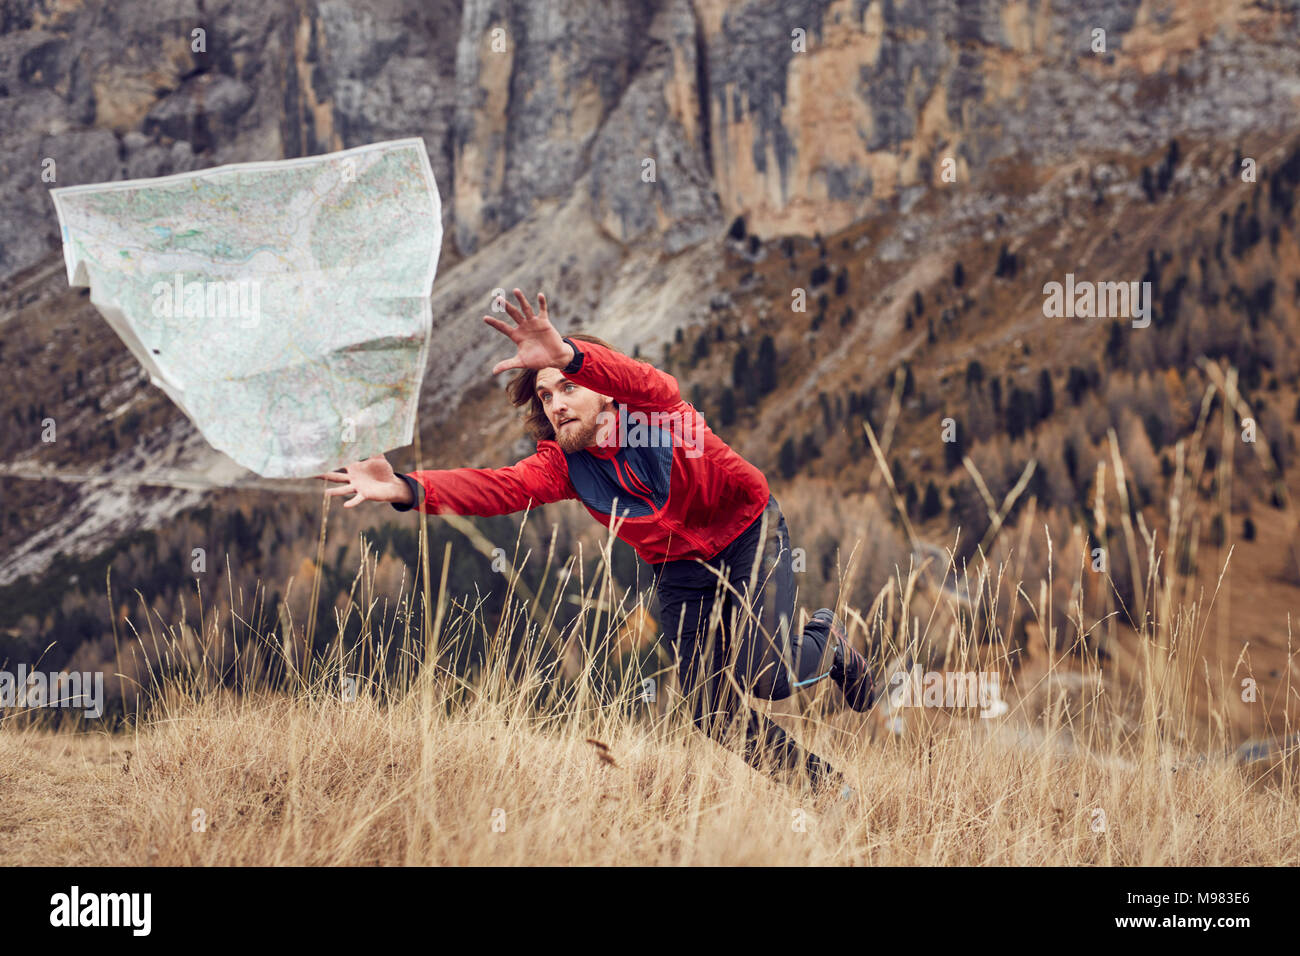 Mountain hiker chasing map flying away - Stock Image